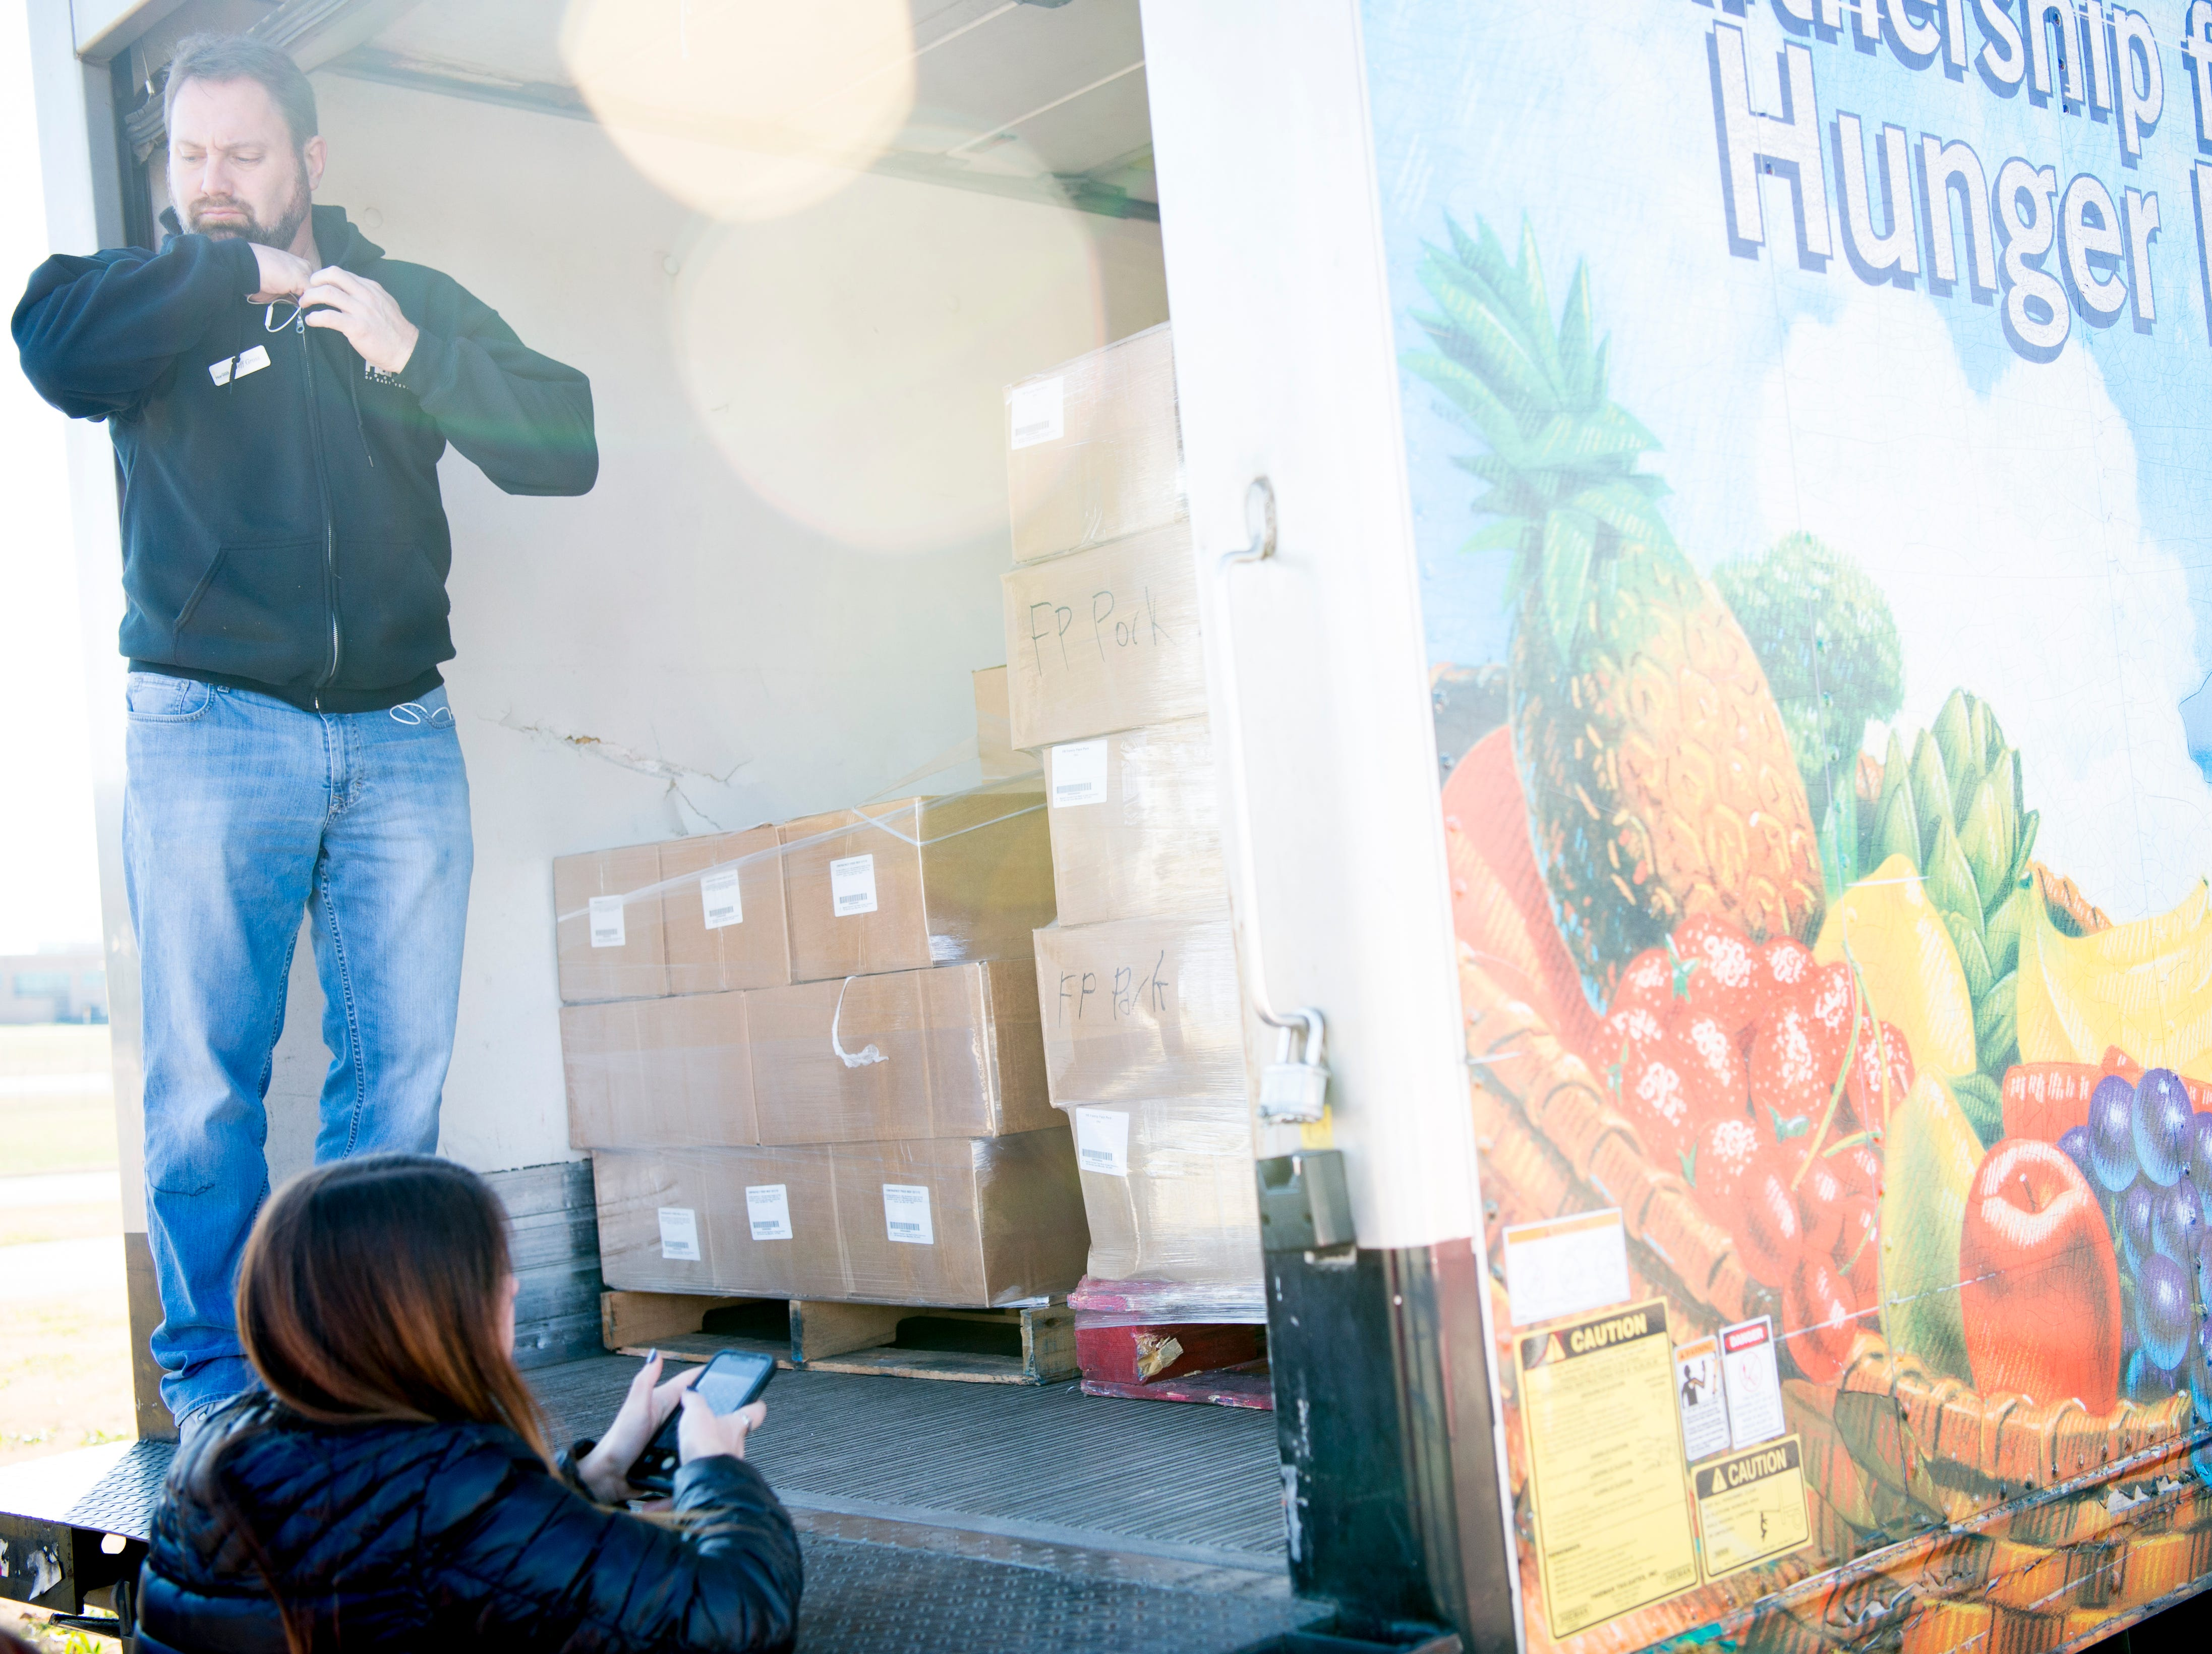 Jeff Gross, from Second Harvest Food Bank, prepares to unload meal boxes to TSA workers at McGhee Tyson Airport in Alcoa, Tennessee on Friday, January 11, 2019. Filling an 'unprecedented request,' Second Harvest Food Bank sent emergency food supplies to TSA workers.